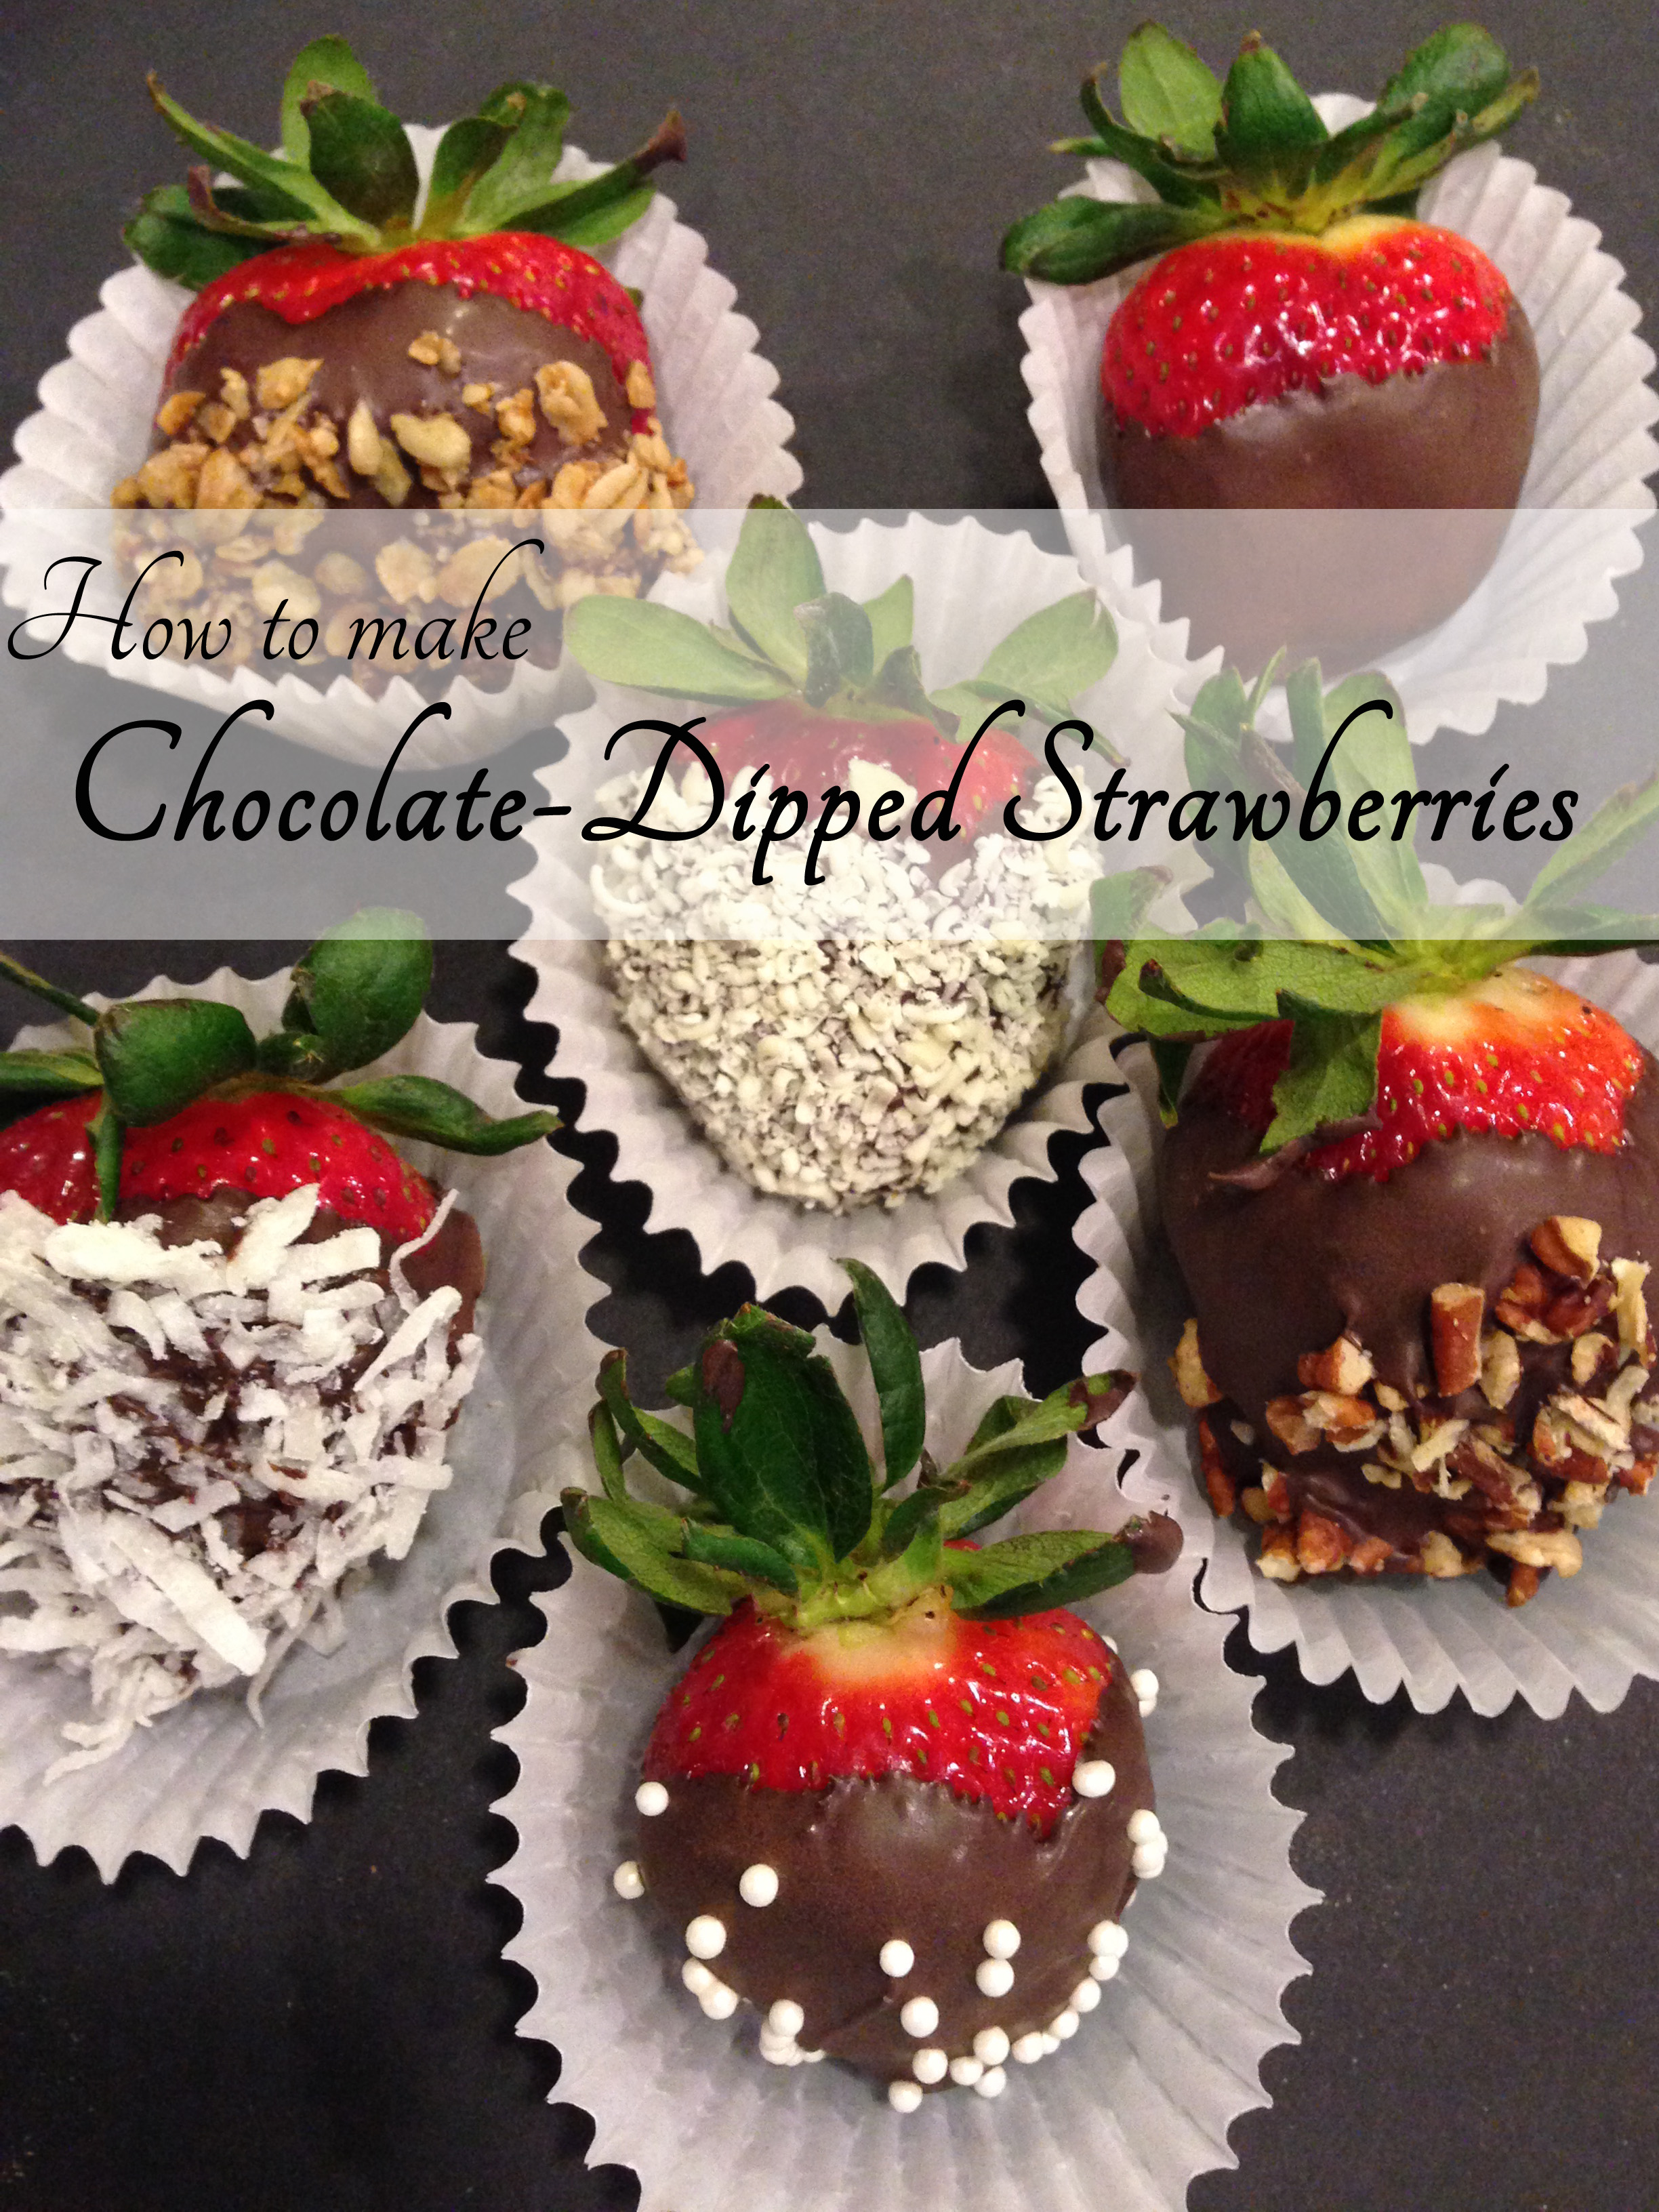 Where To Buy Large Strawberries For Dipping